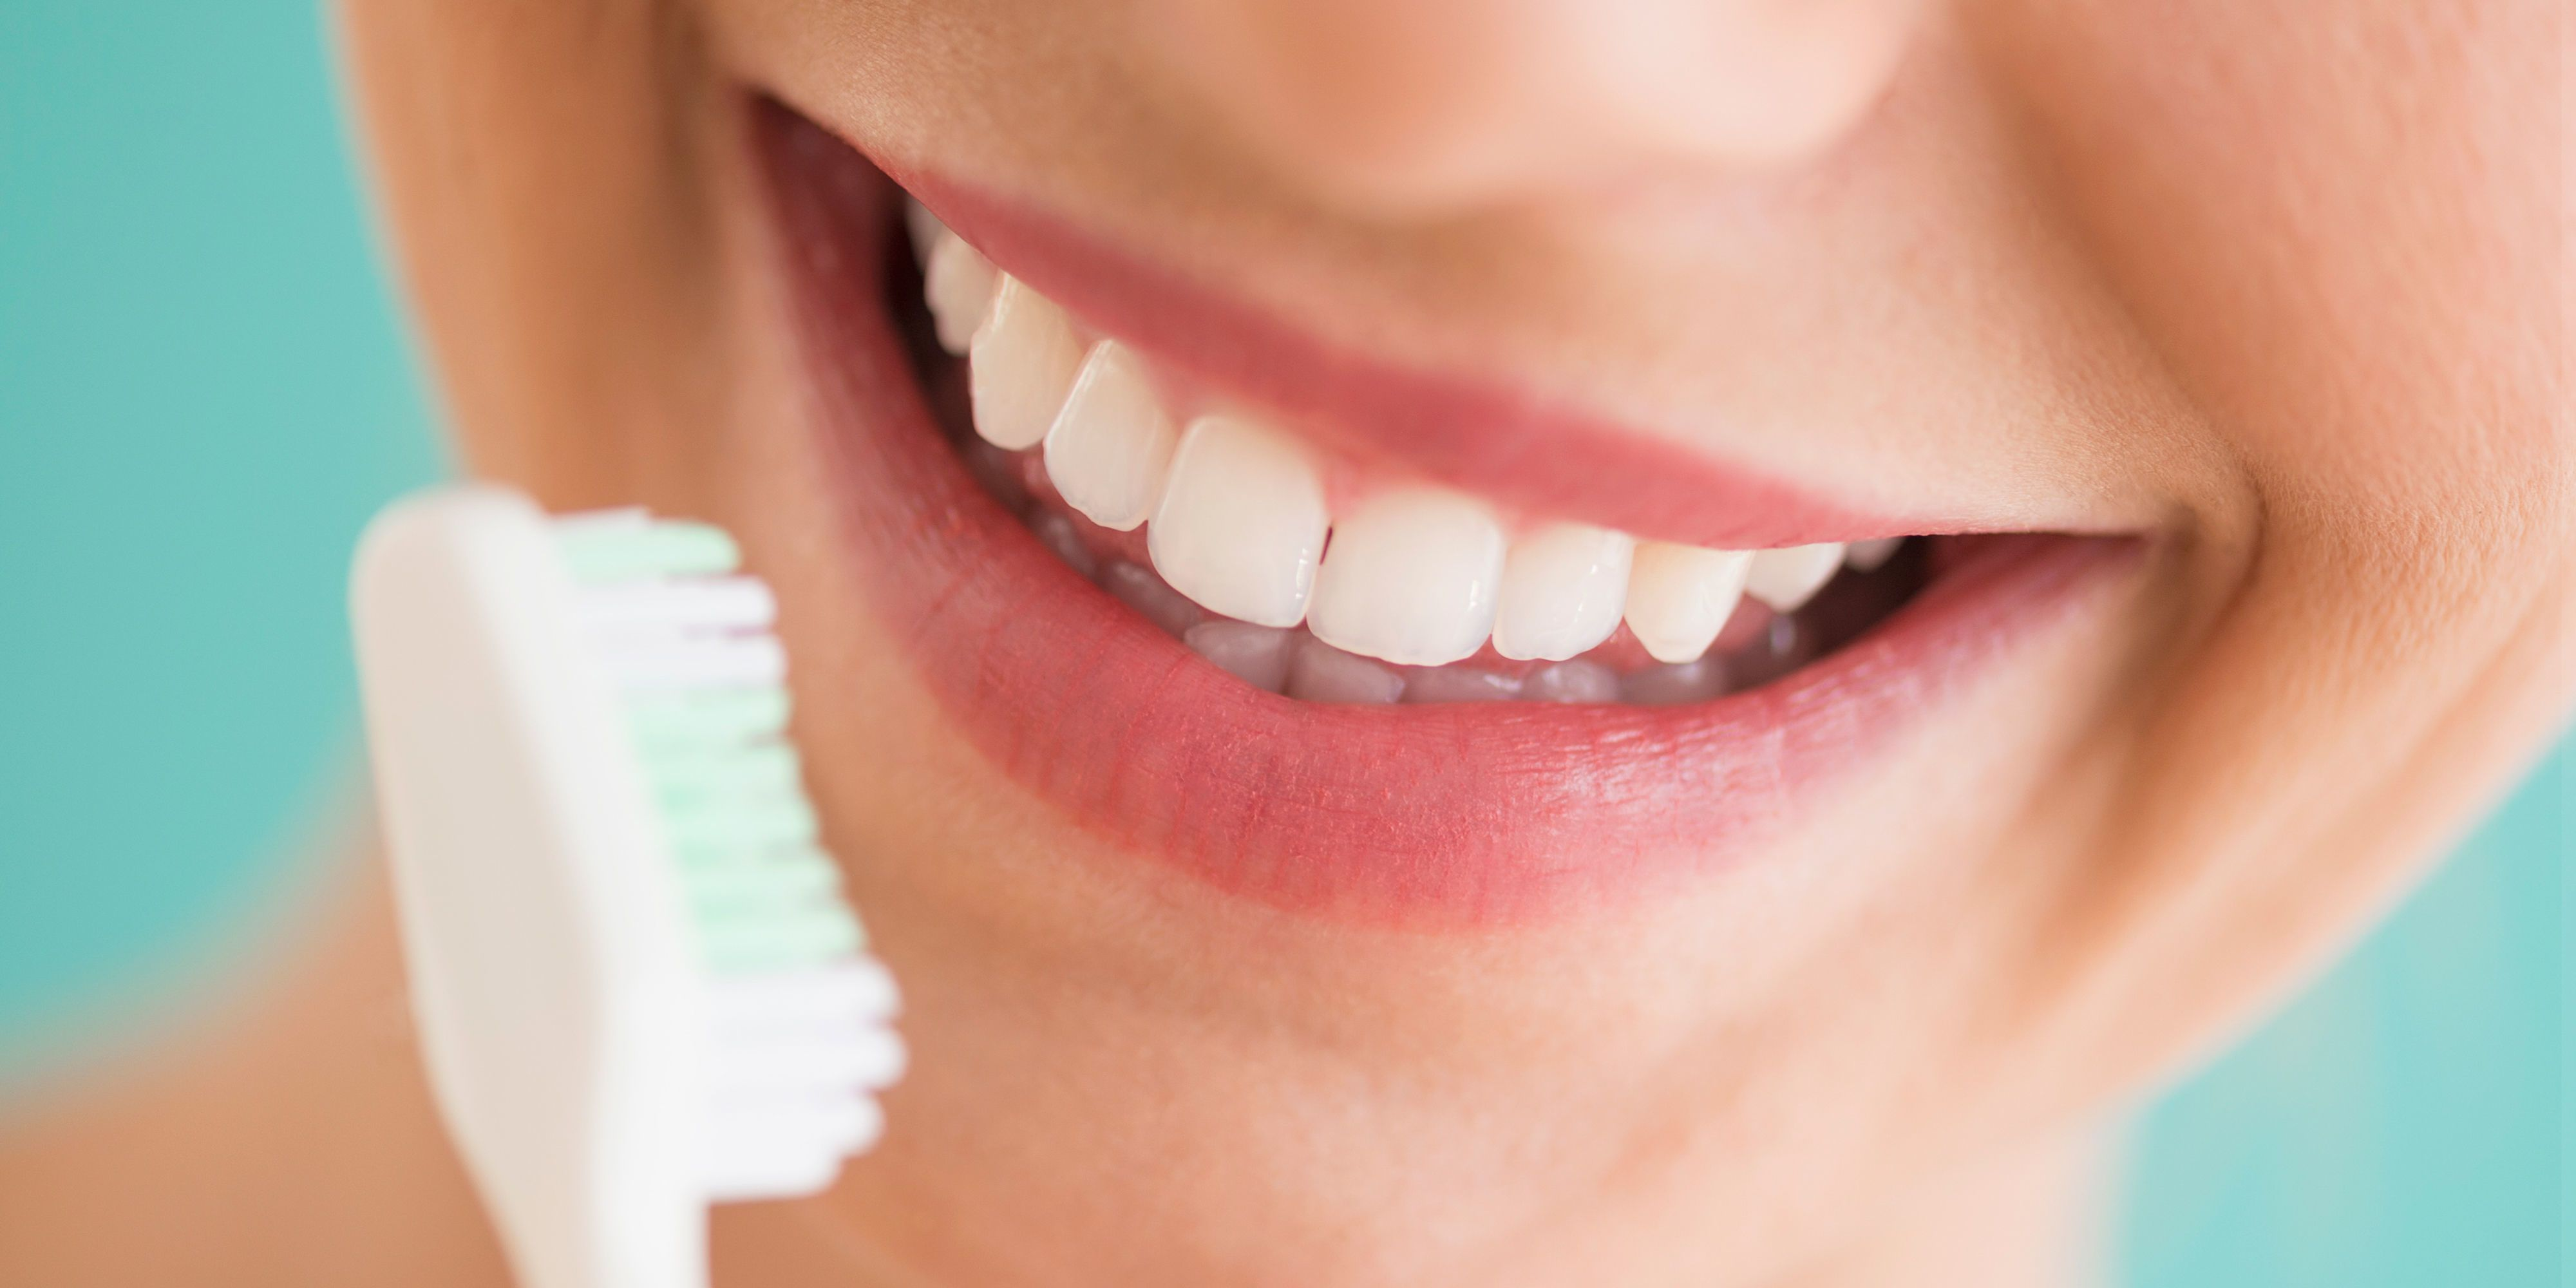 Is Toothpaste Wrecking Your Teeth